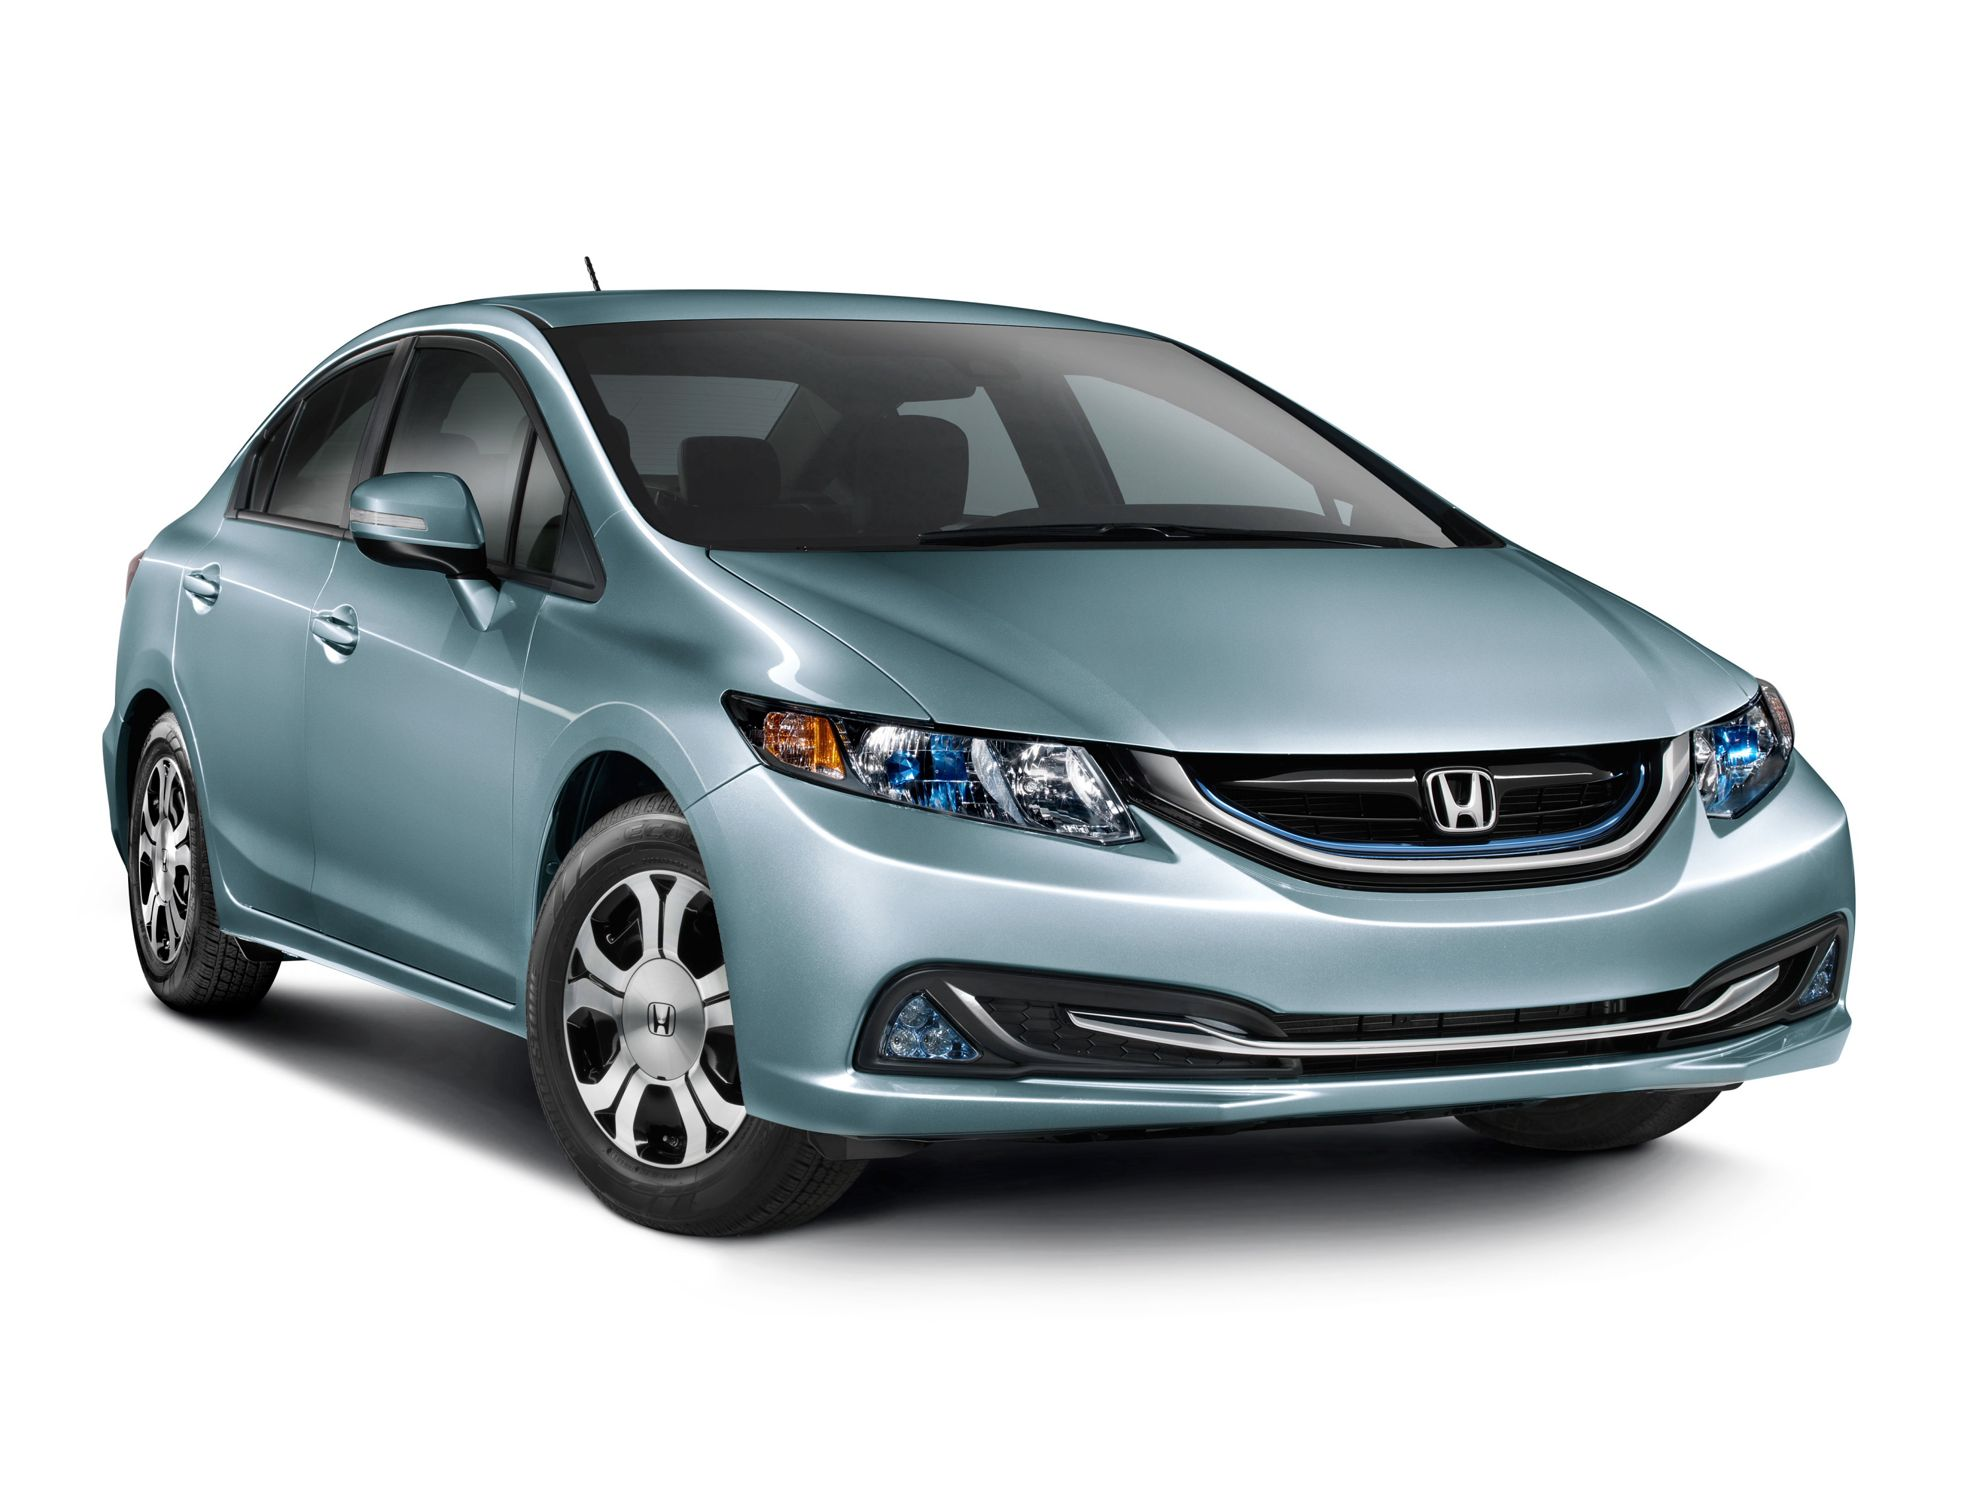 Honda_Civic_Hybrid_2014